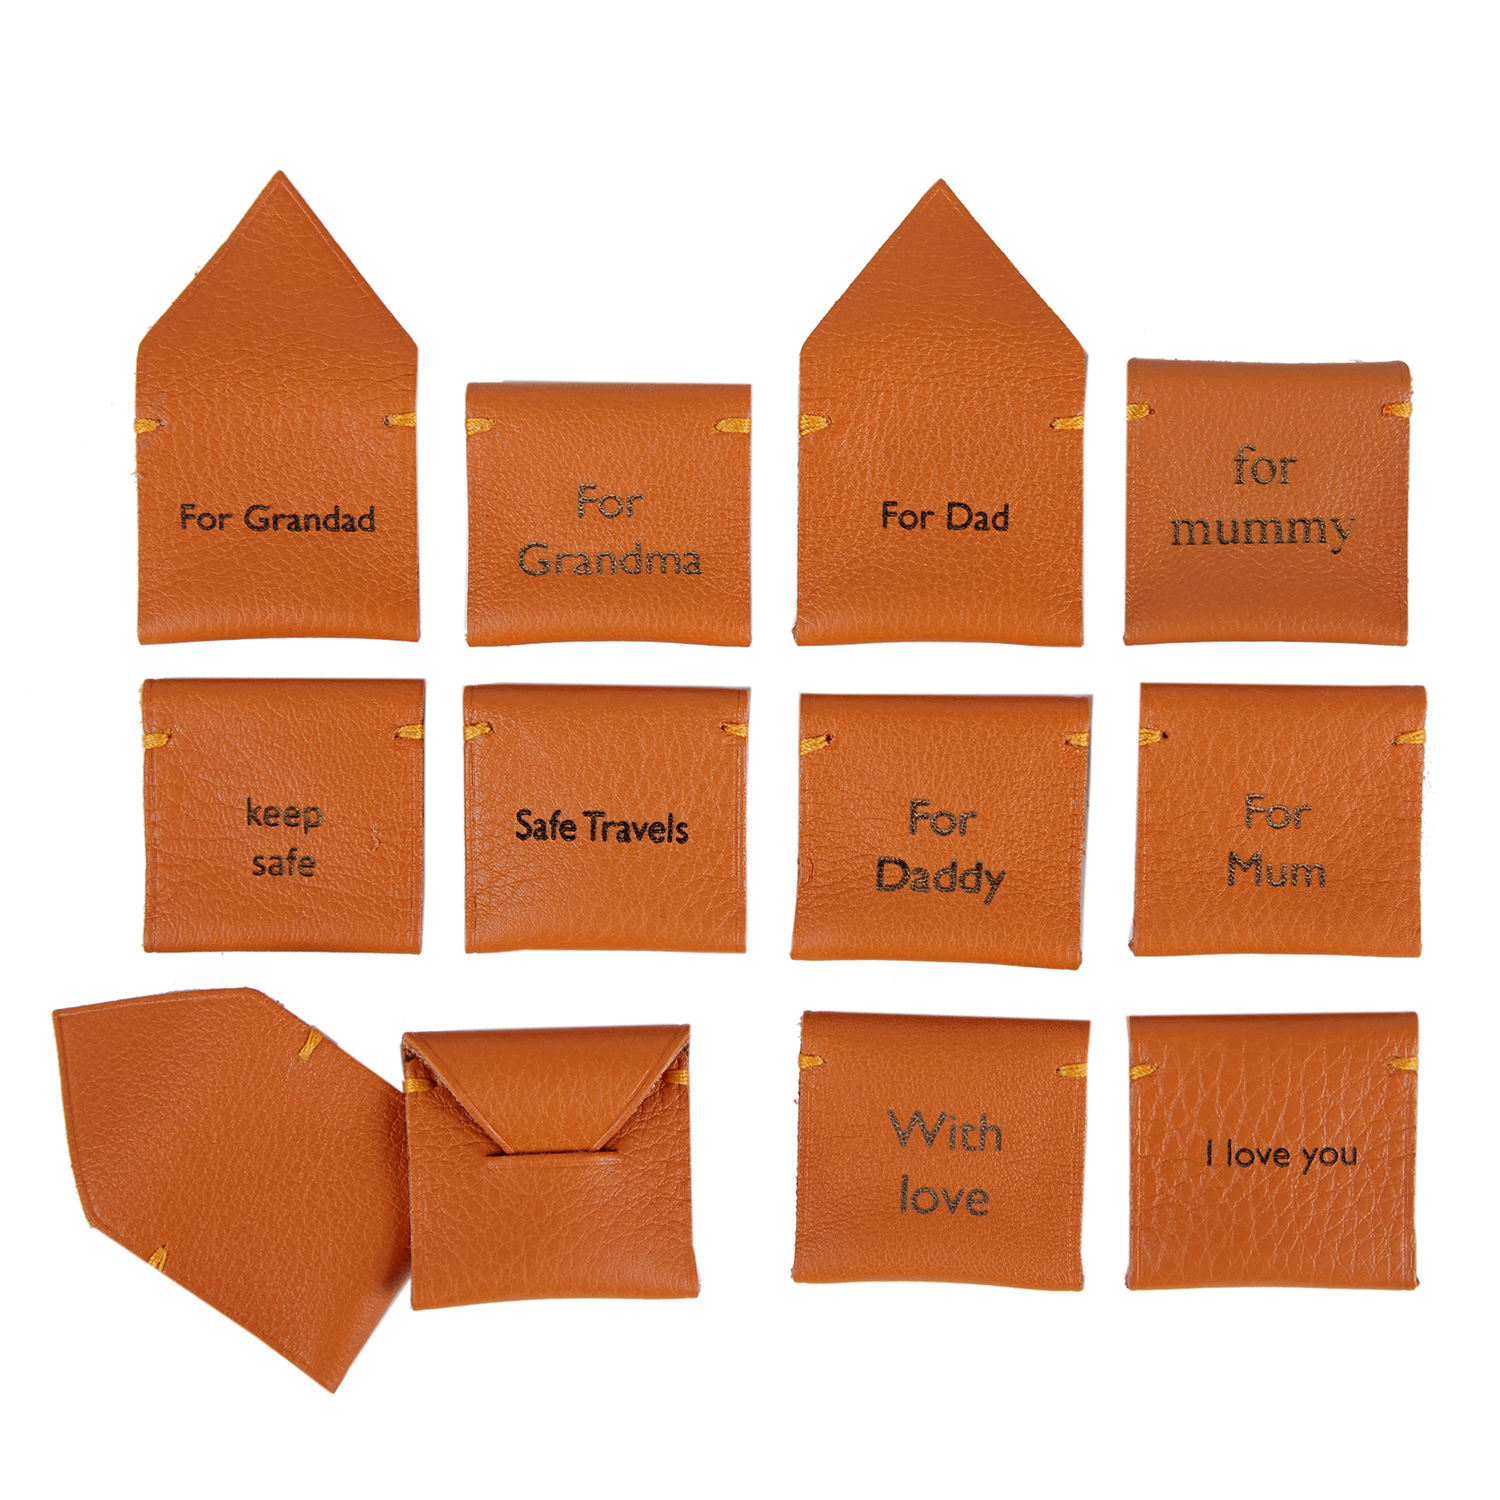 Stowaway Envelope Message Selection.jpg